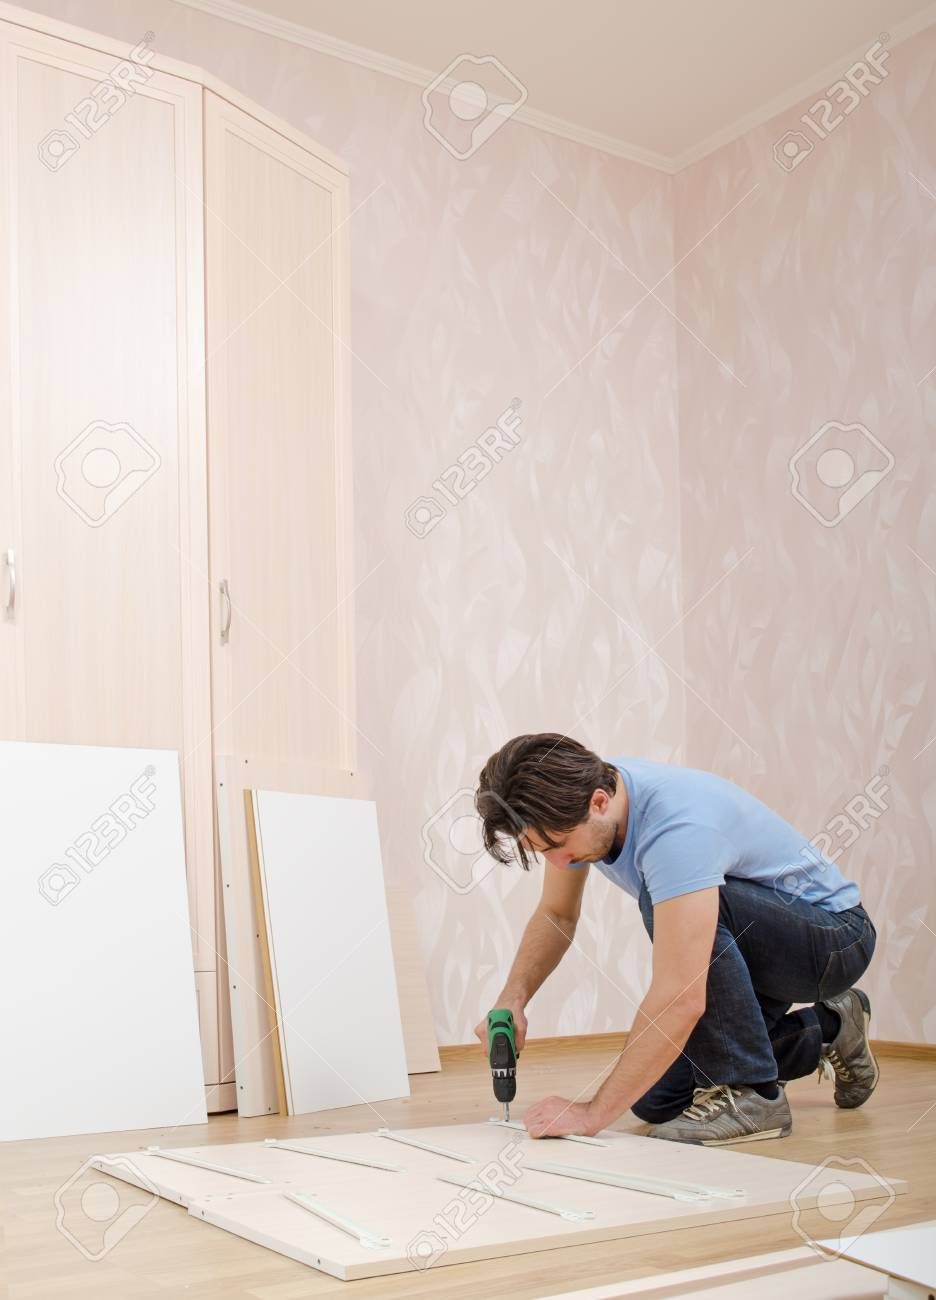 man by drill to twist screw furniture assembly Stock Photo - 16904772